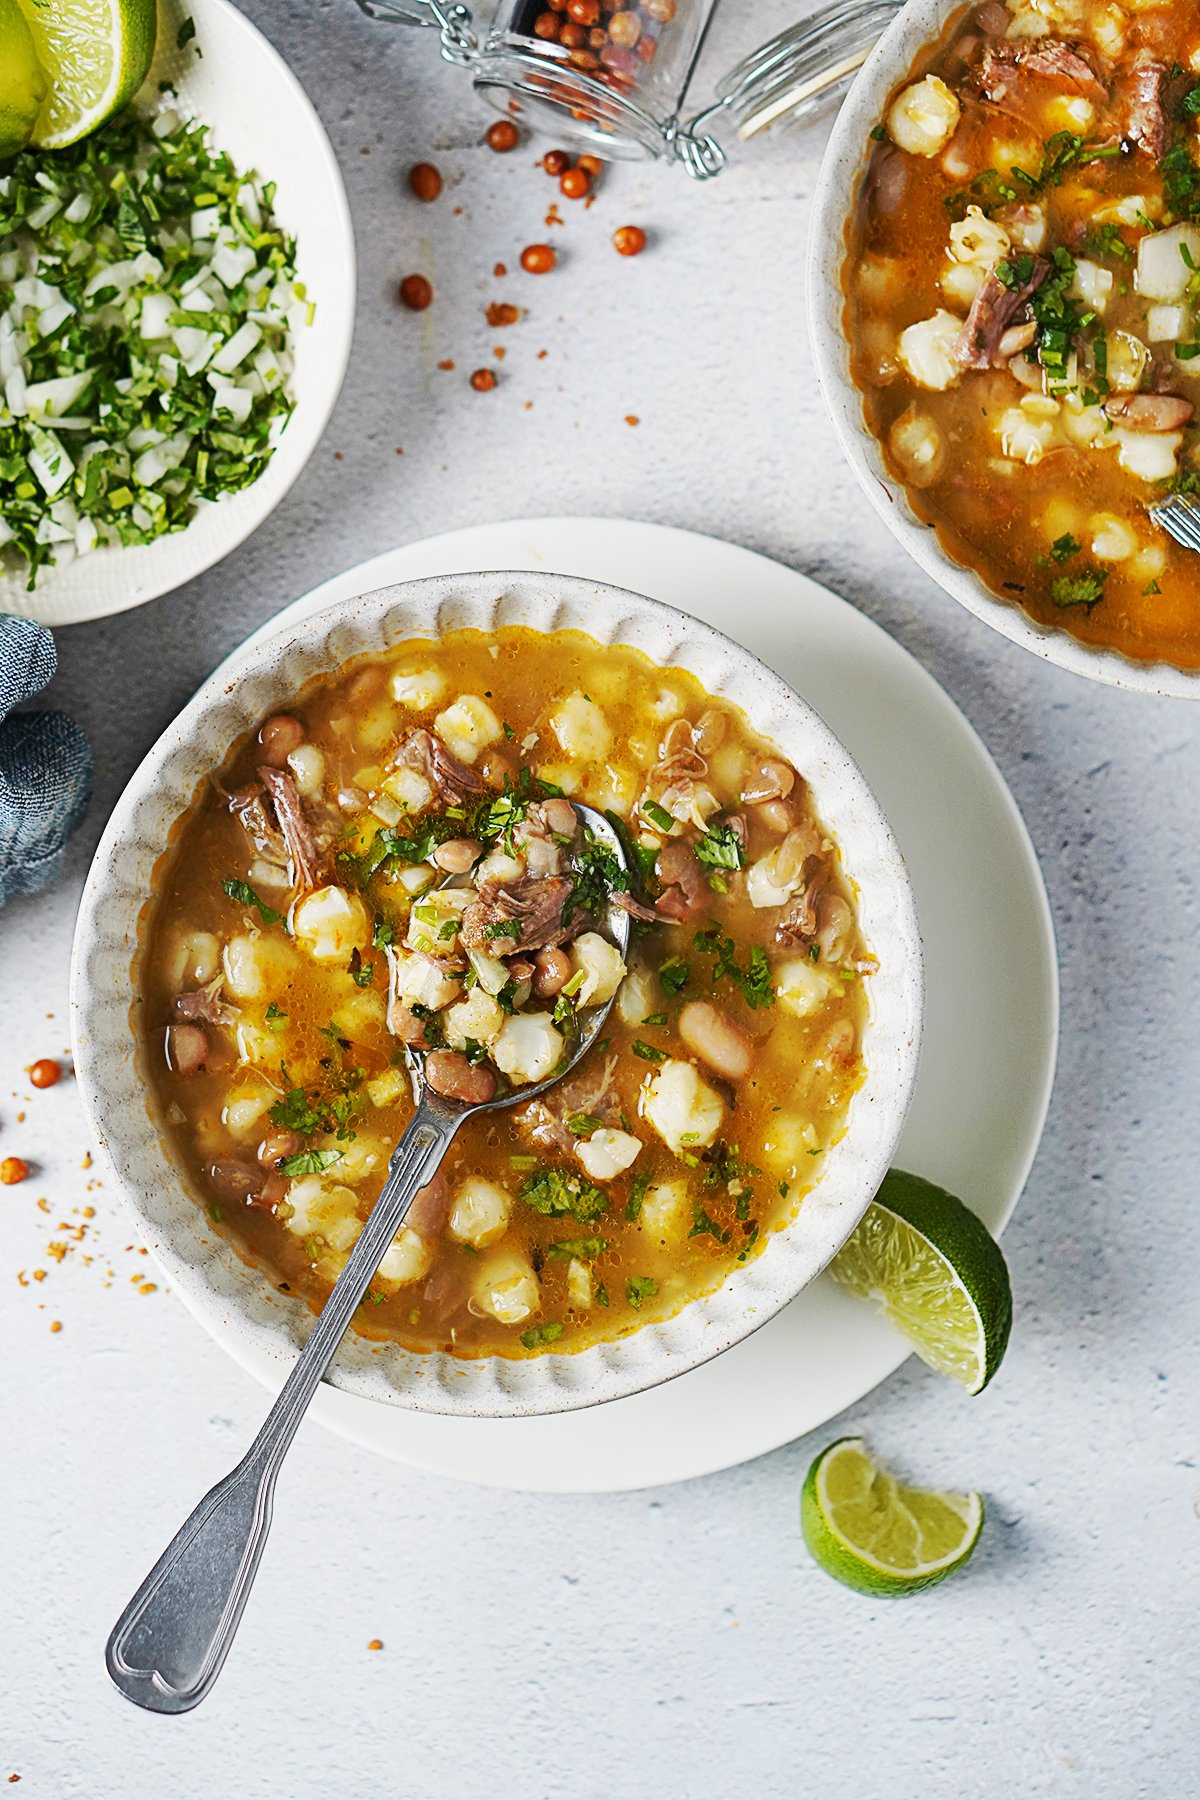 Two bowls of Soup with a spoon grabbing some soup.